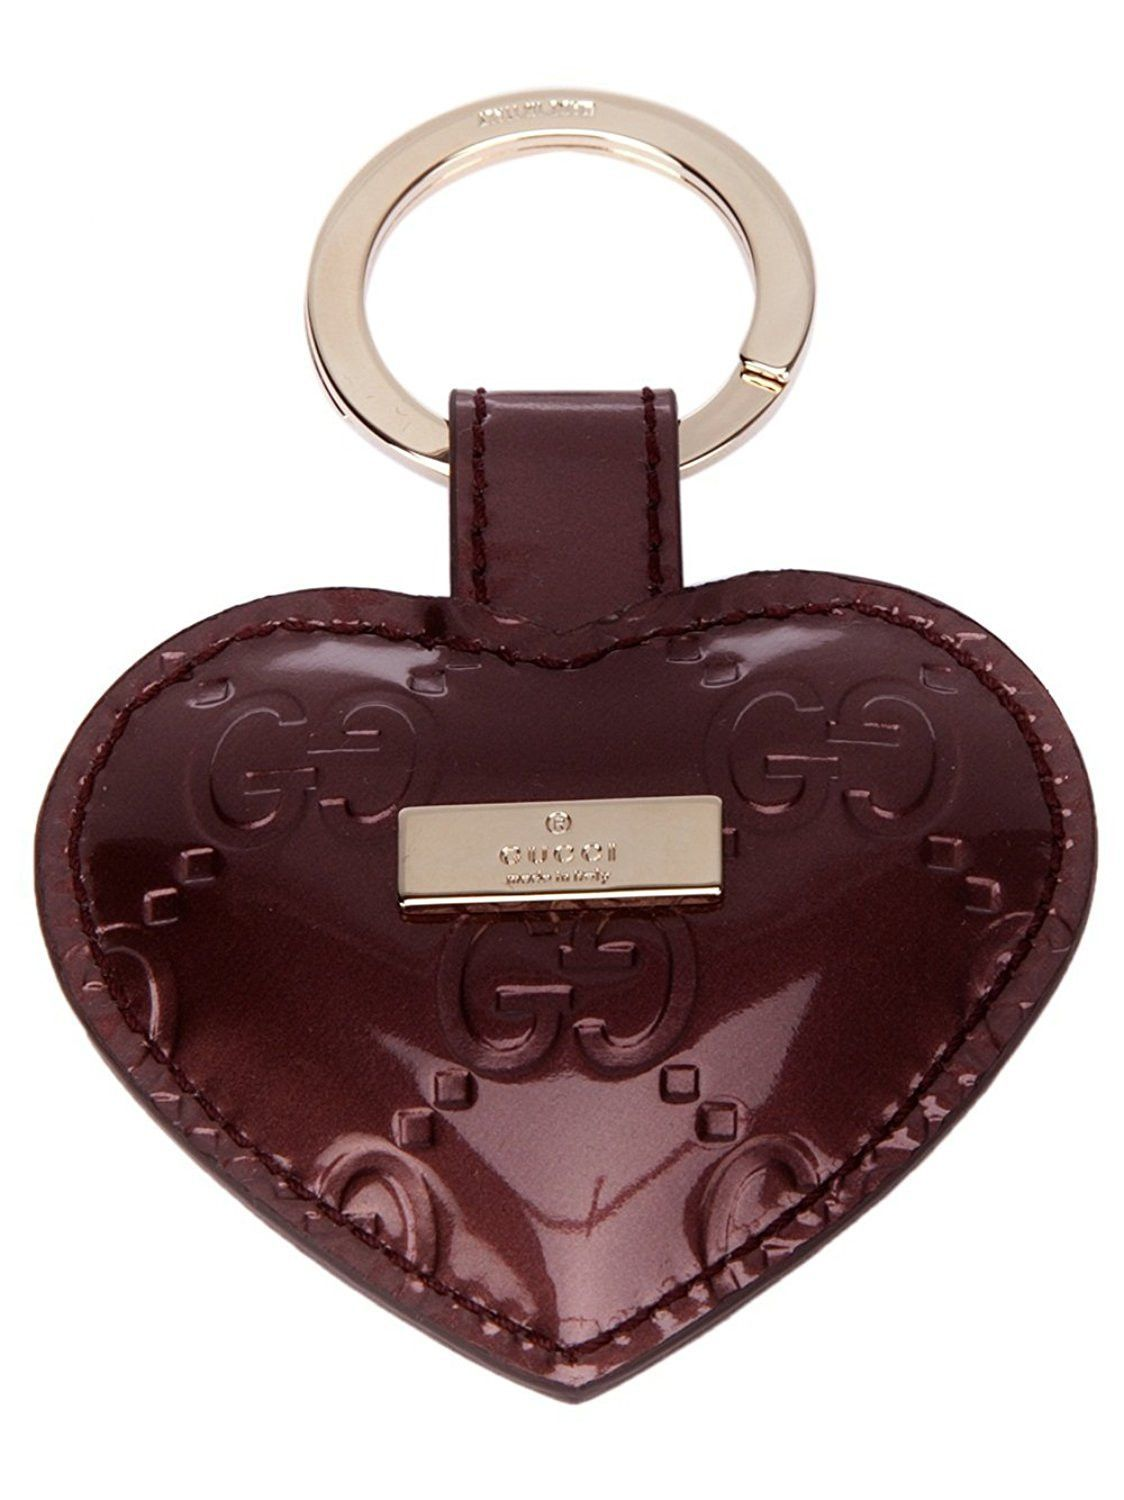 e65cdb2e5f2 Gucci Microguccissima Purple Patent Leather Heart Key Chain Ring